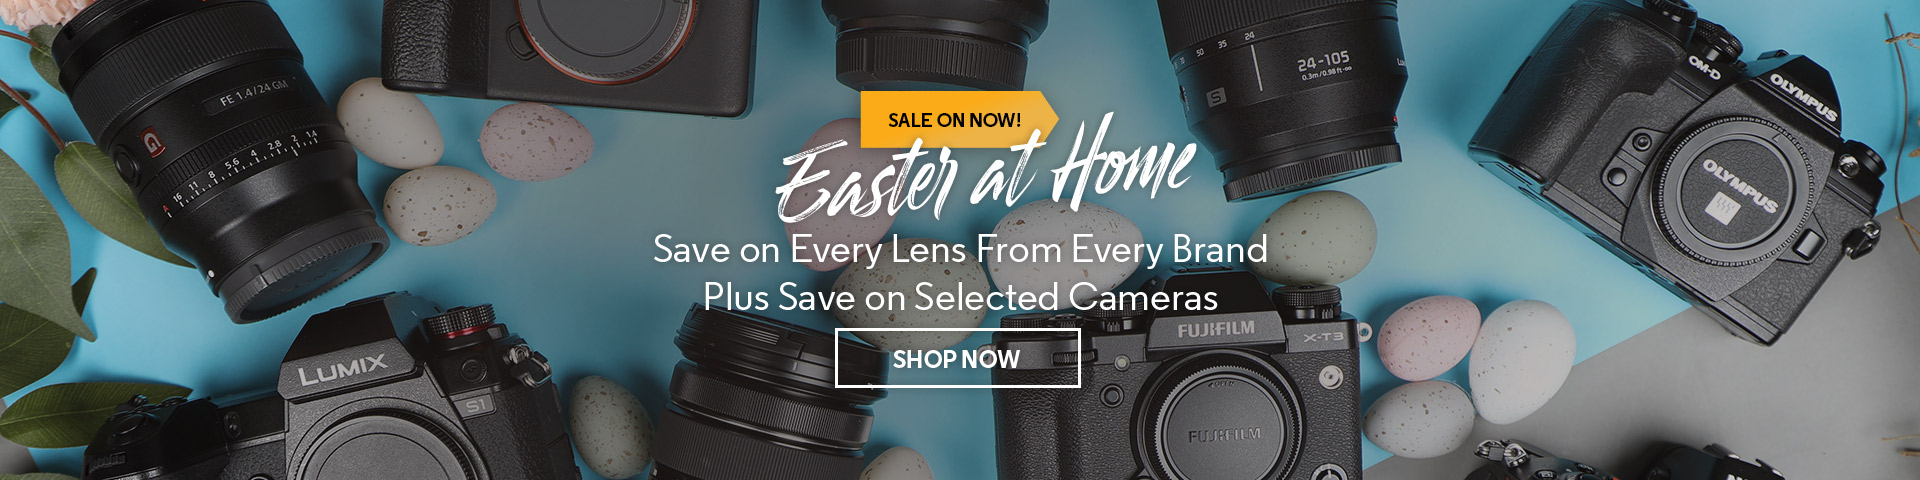 Easter at Home - Save on Every Lens From Every Brand Plus Save on Selected Cameras